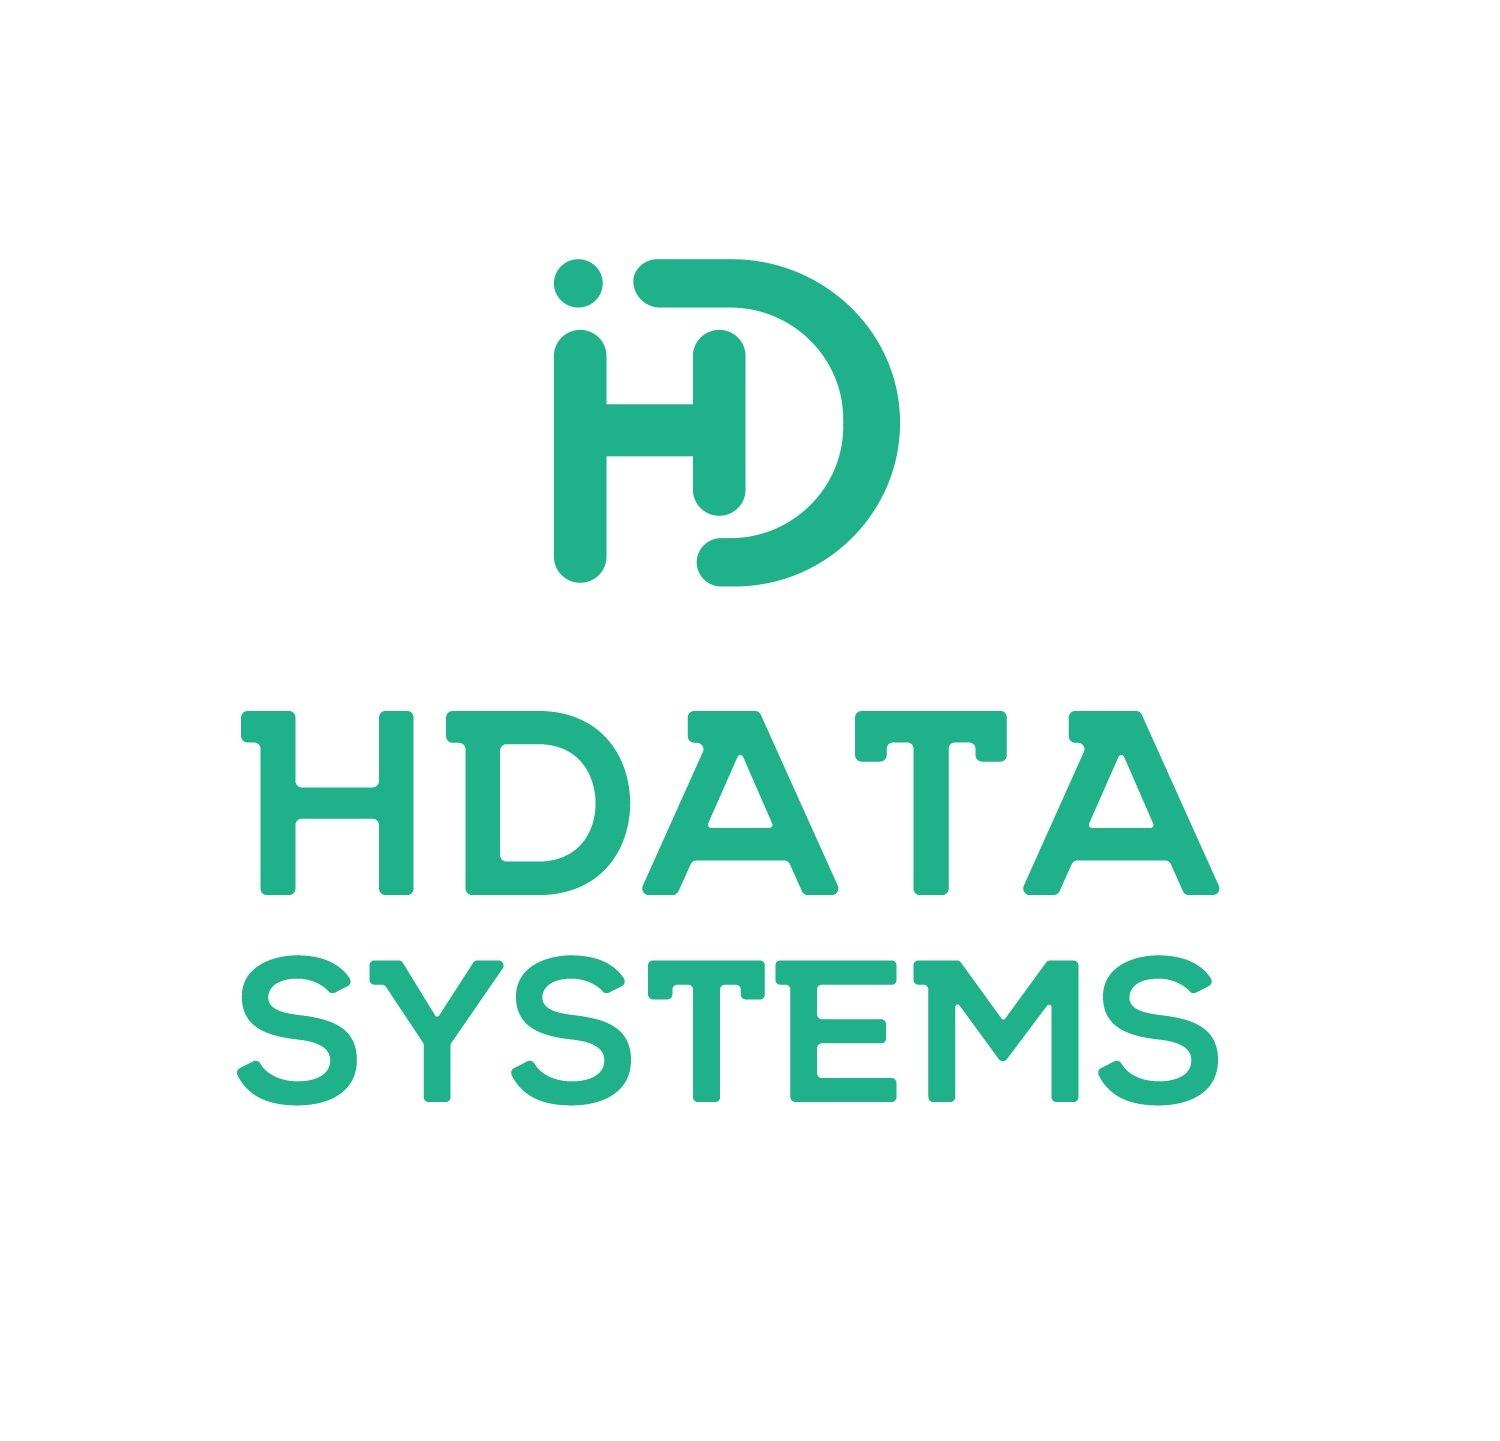 hdata systems